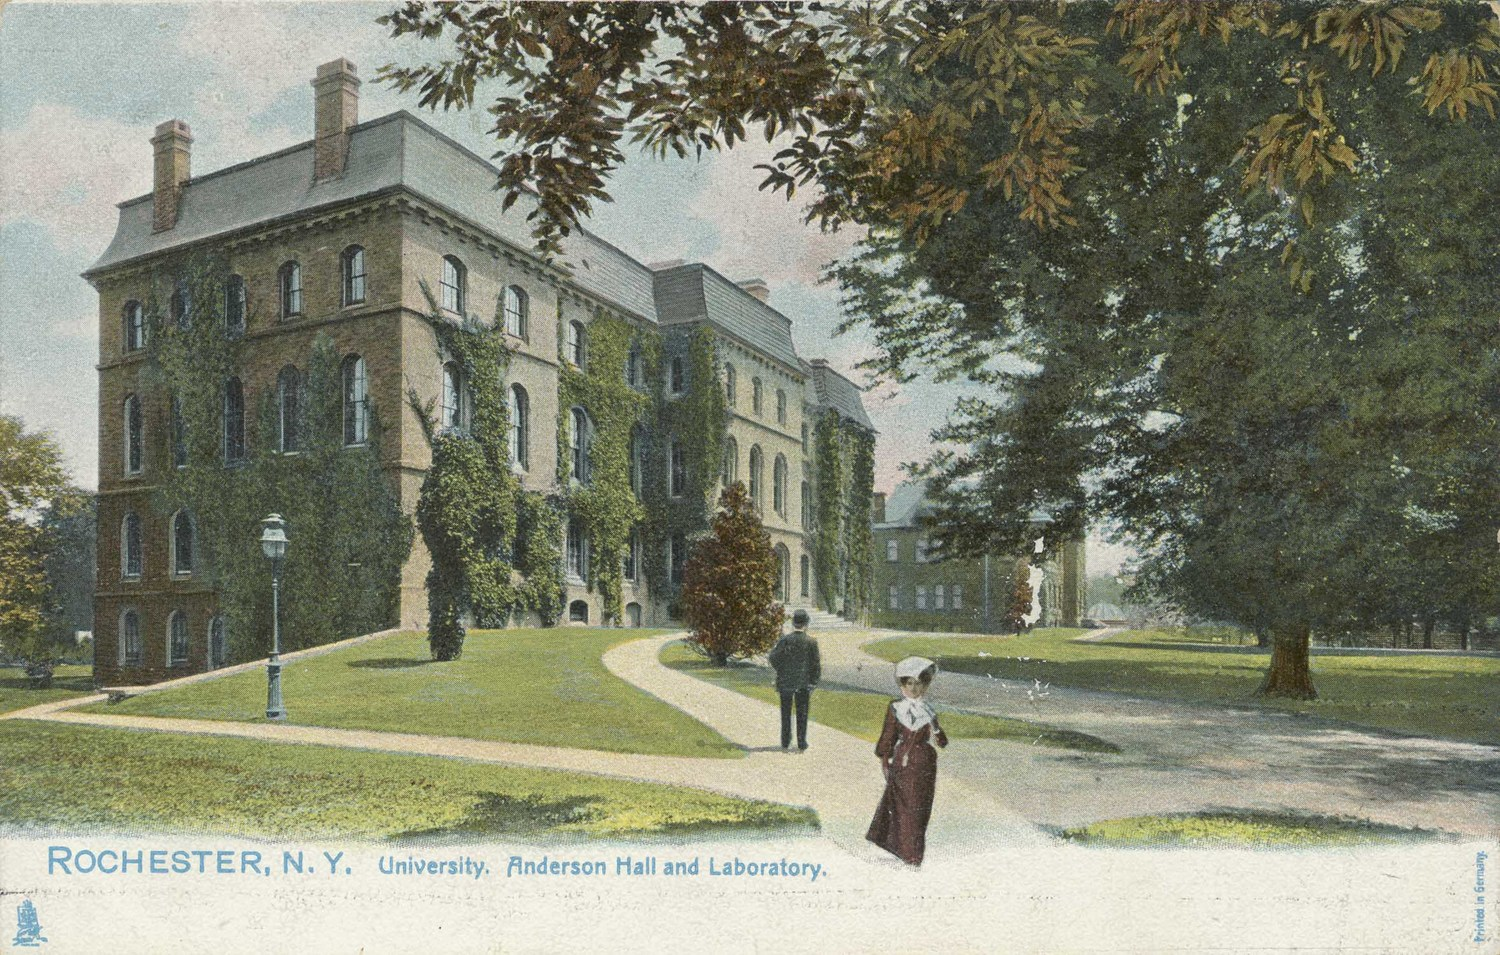 Rochester, N.Y. University. Anderson Hall and Laboratory.